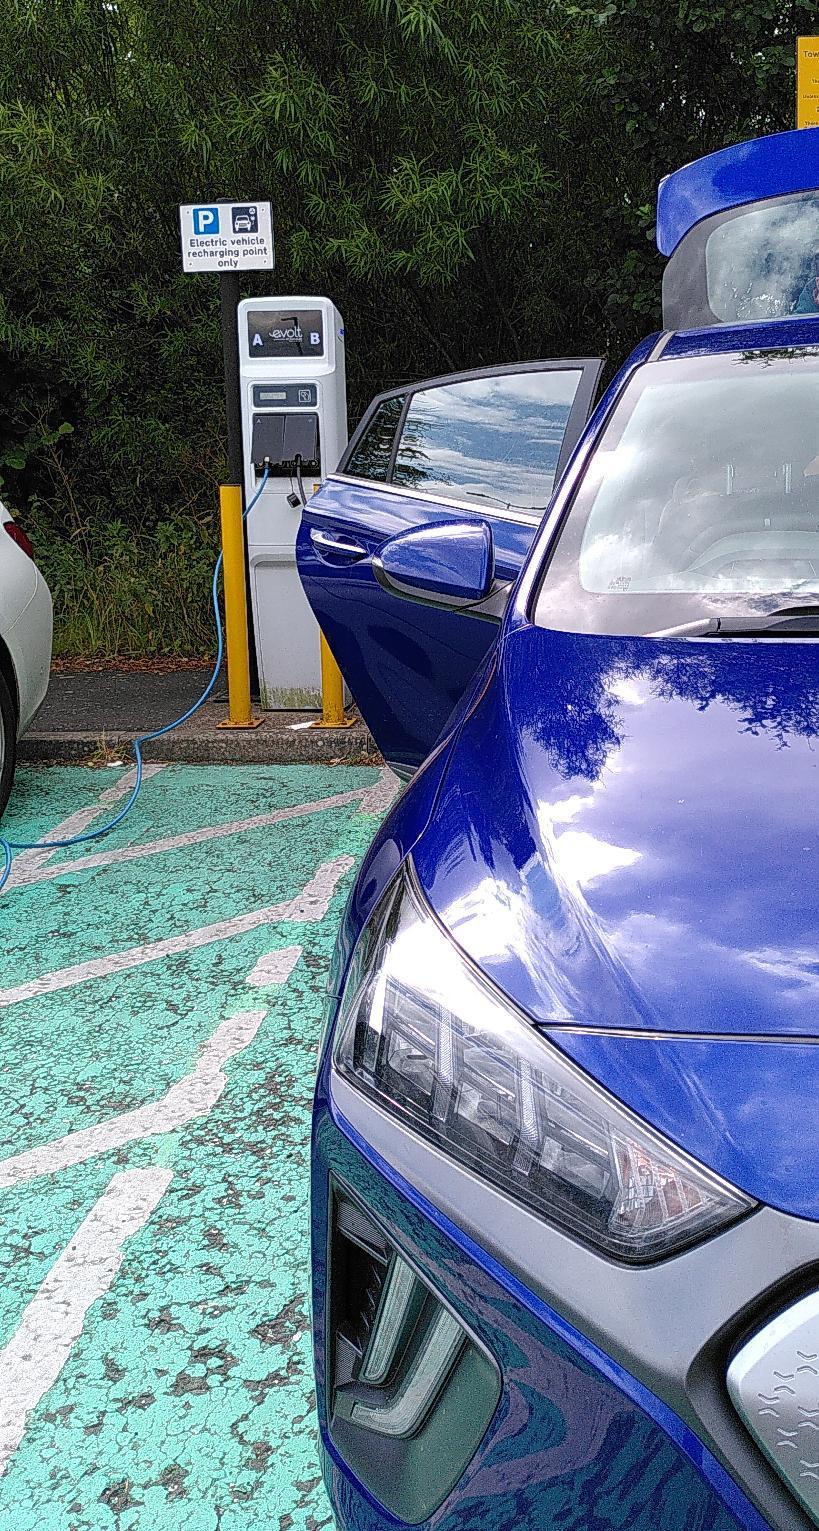 Blue car with door and boot open plugged into a white charging station